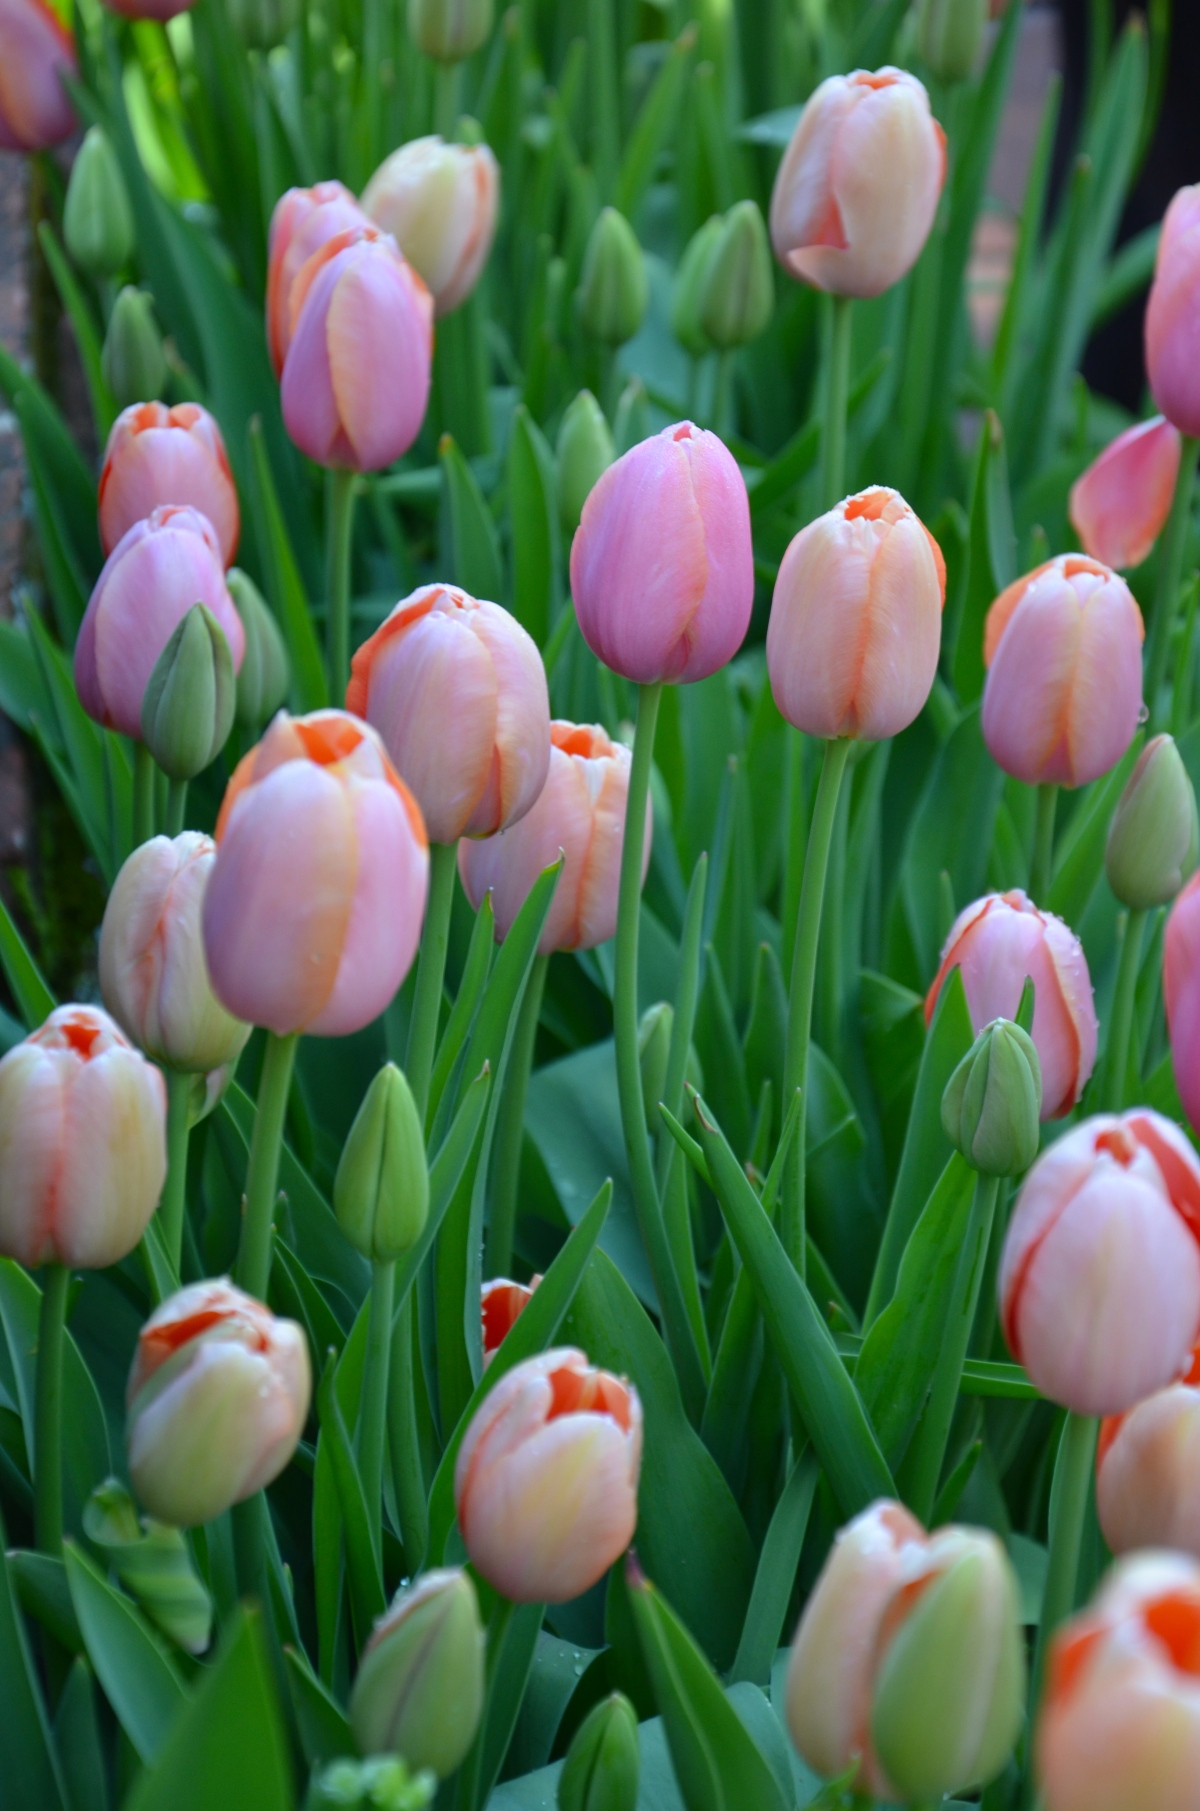 Tulip time at Filoli in Woodside, California